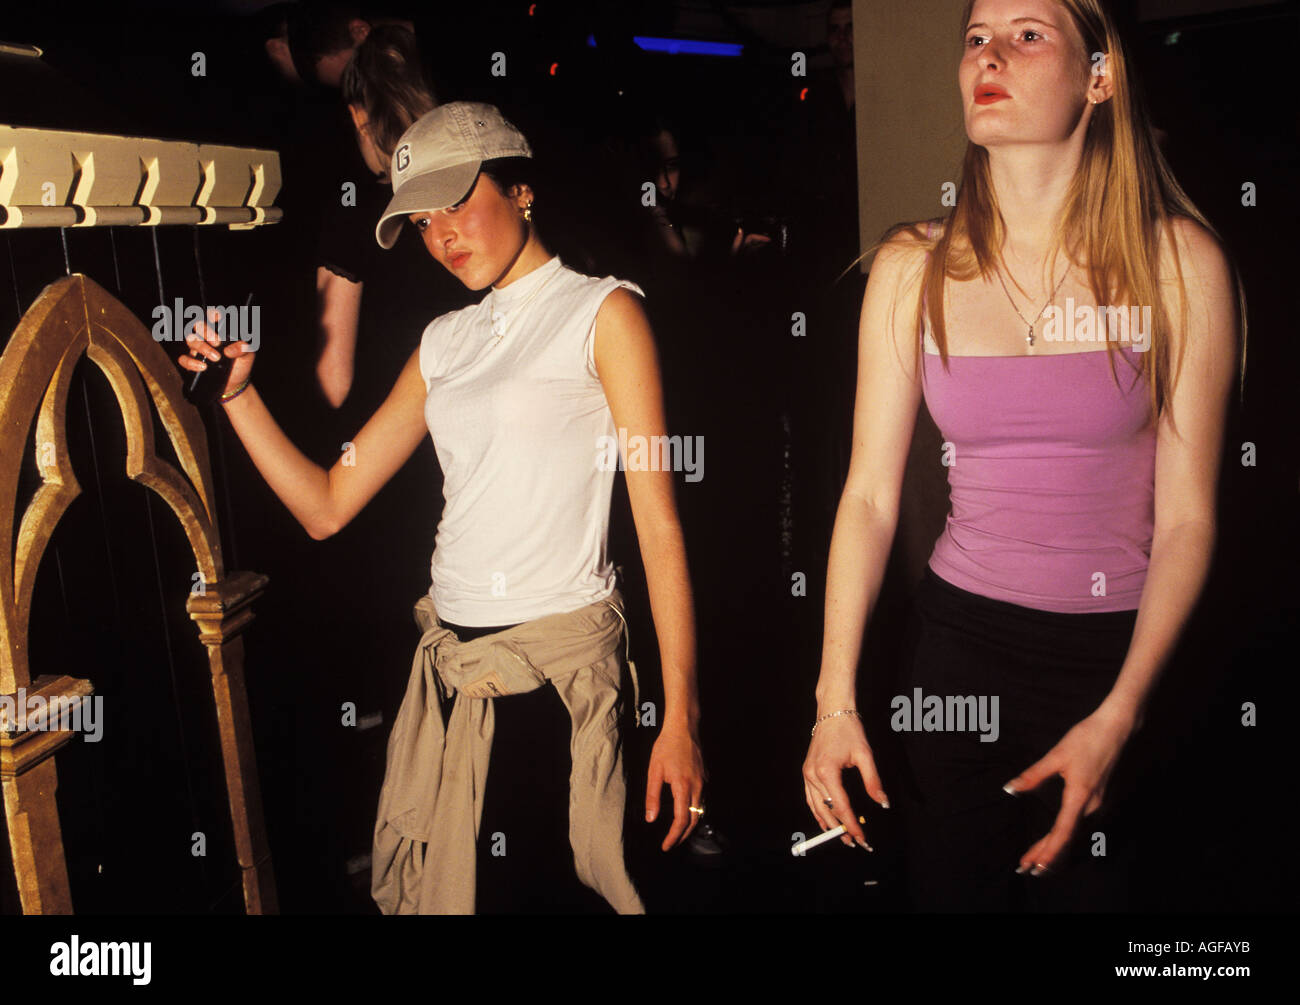 girls dancing in club